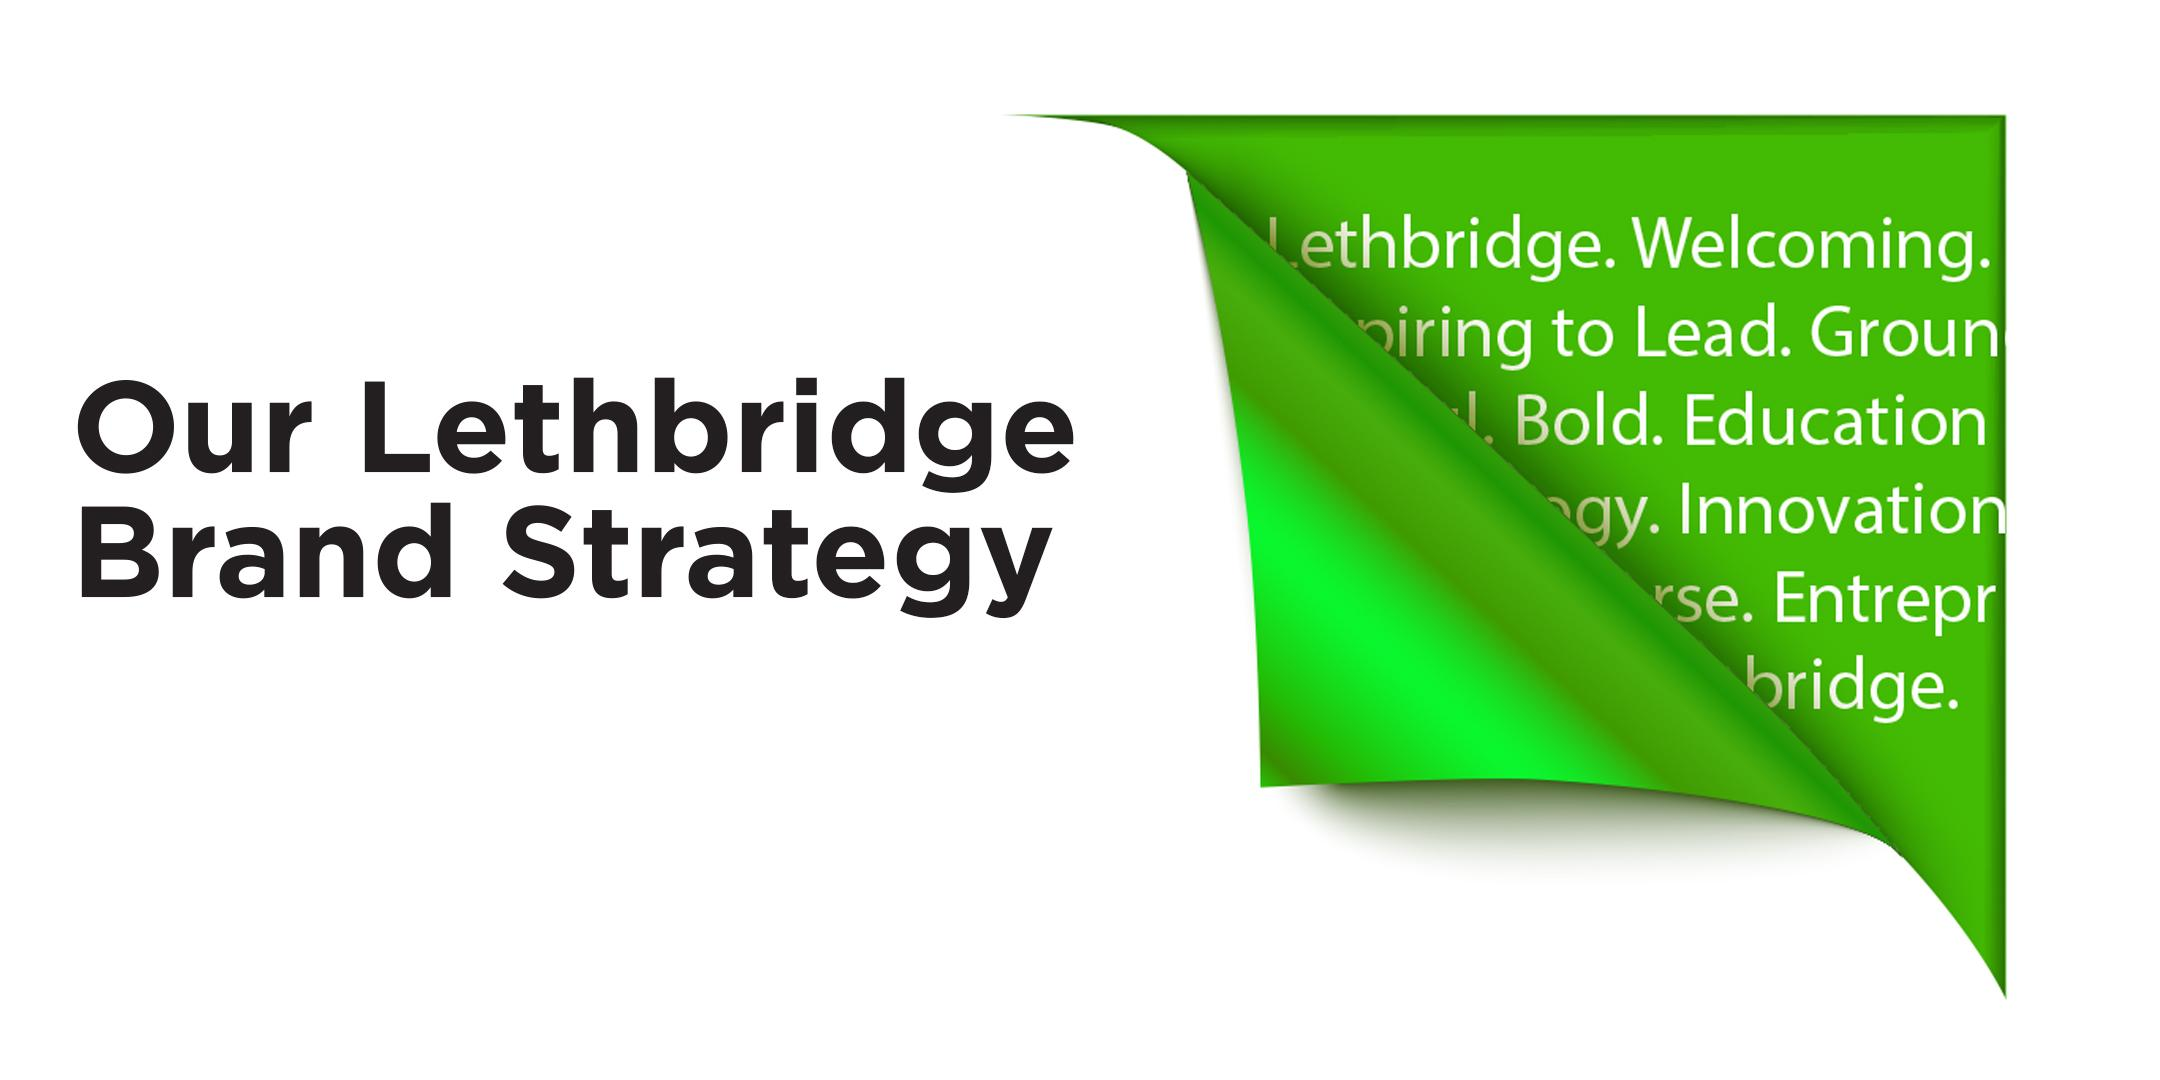 Our Lethbridge Brand Strategy - Media Launch